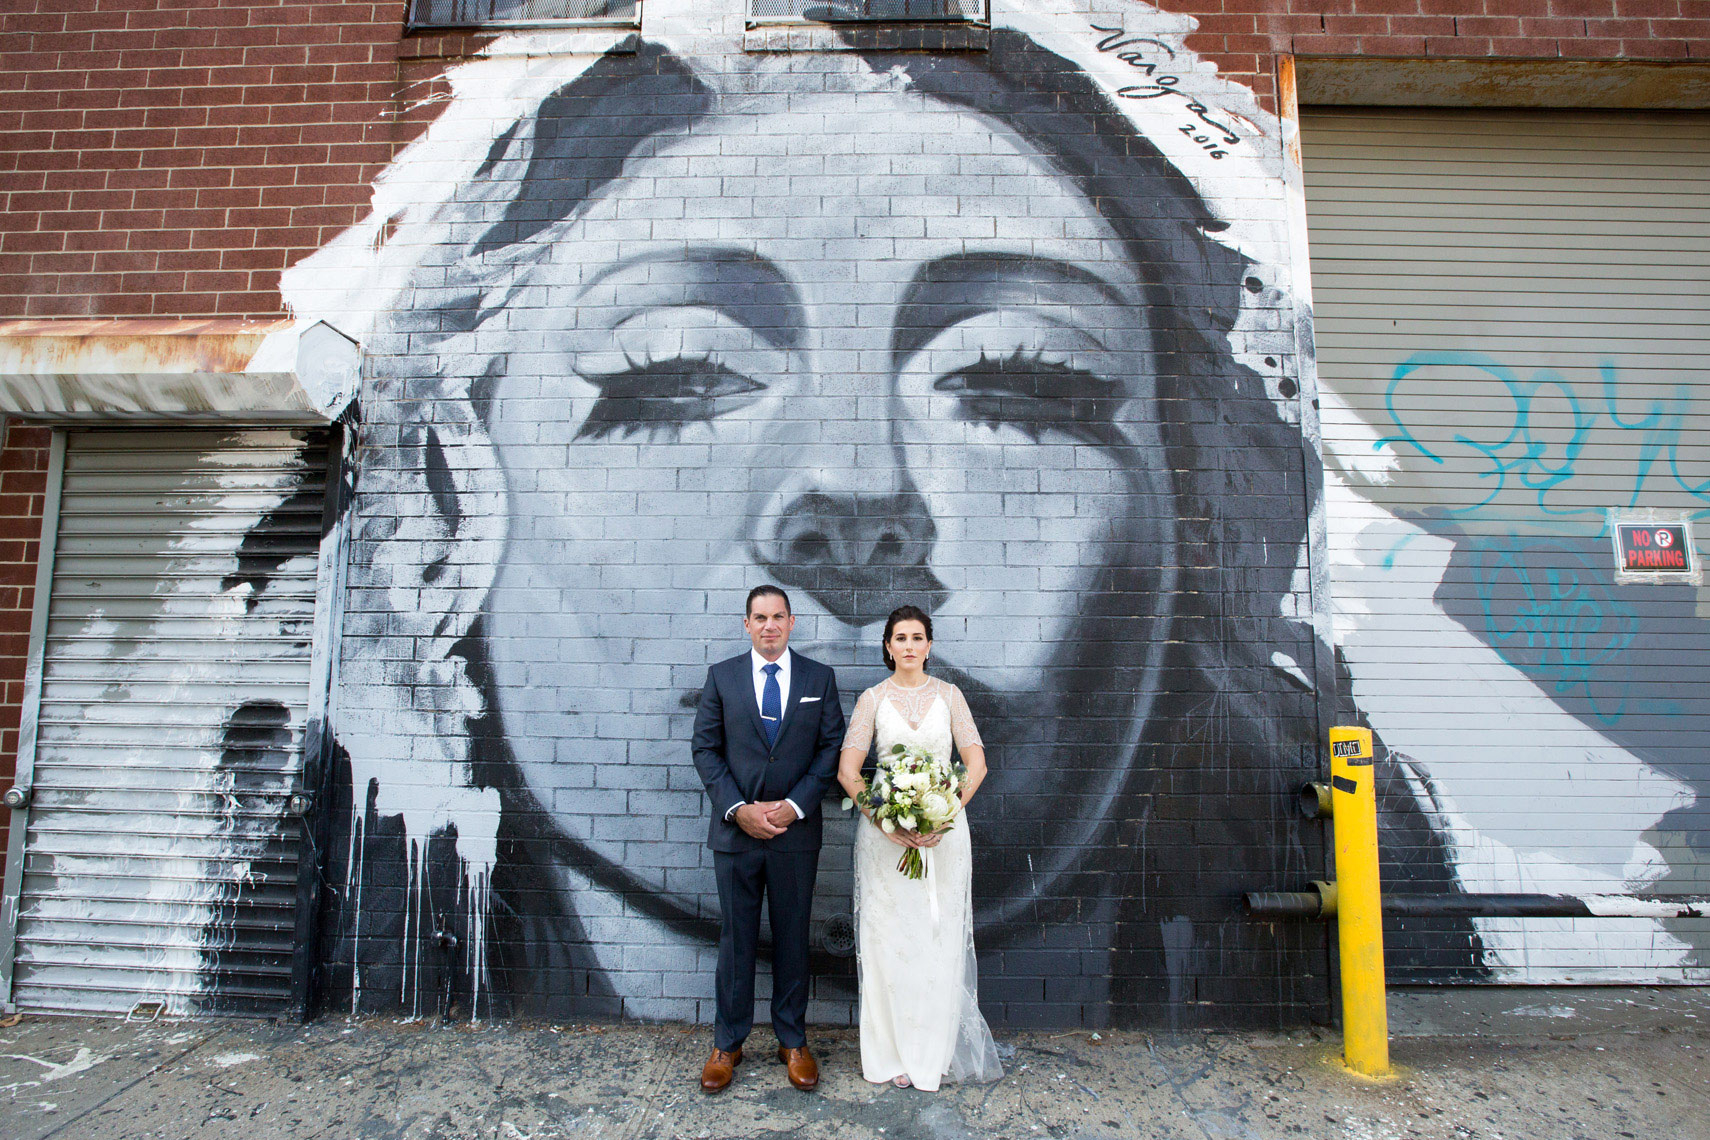 Sarma-and-Co-bride-groom-mural-Williamsburg-Brooklyn-wedding-photographers